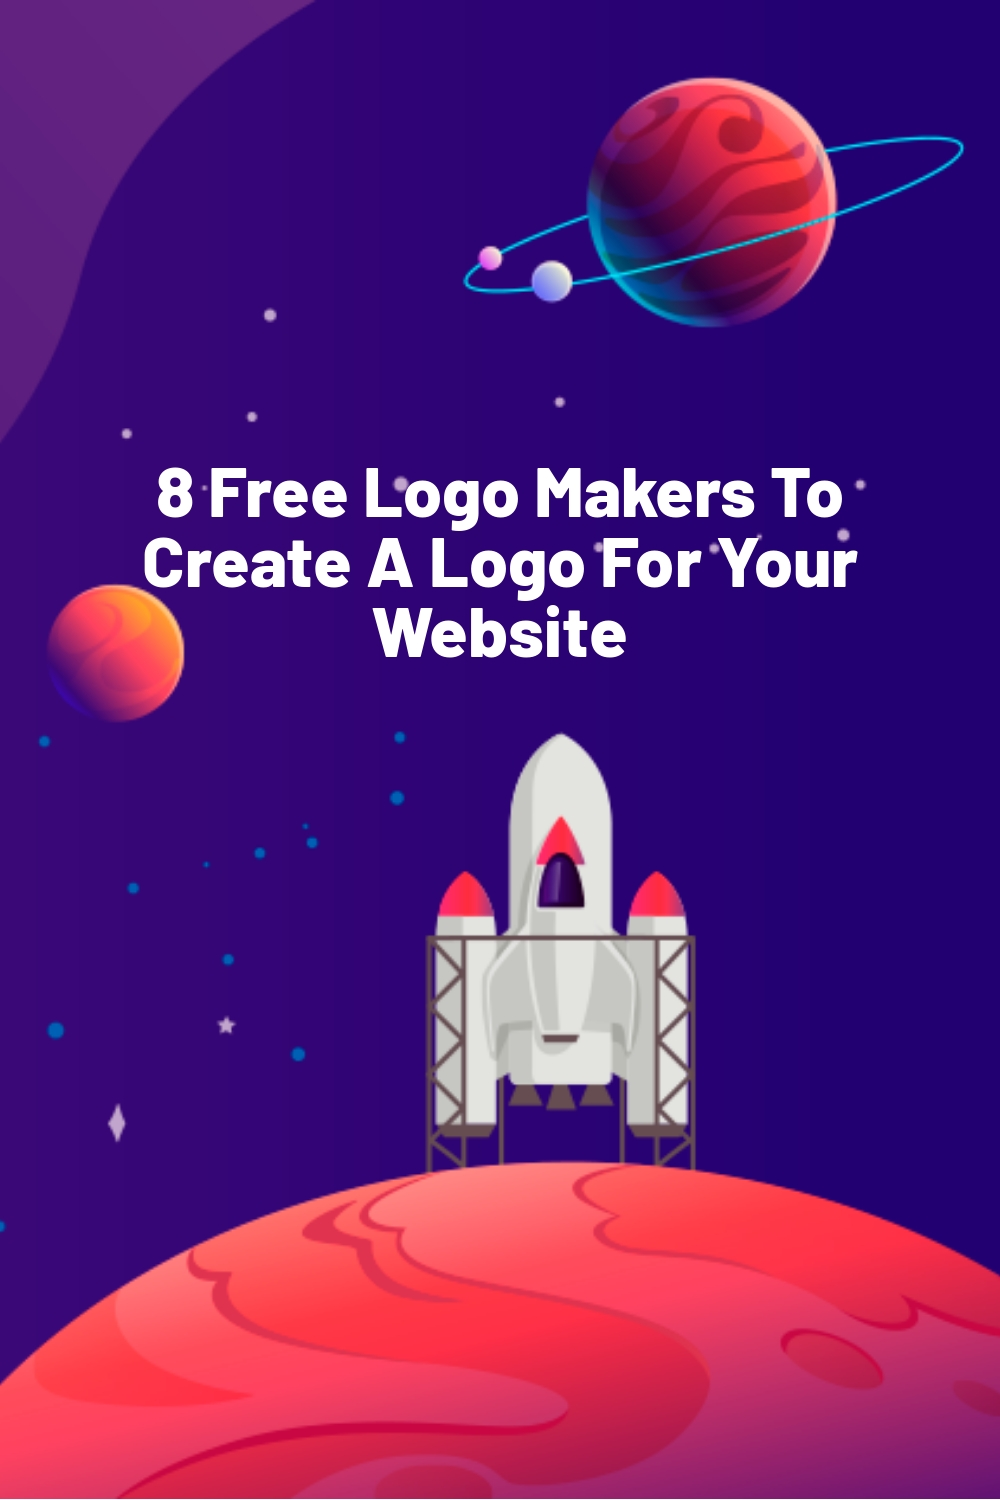 8 Free Logo Makers To Create A Logo For Your Website